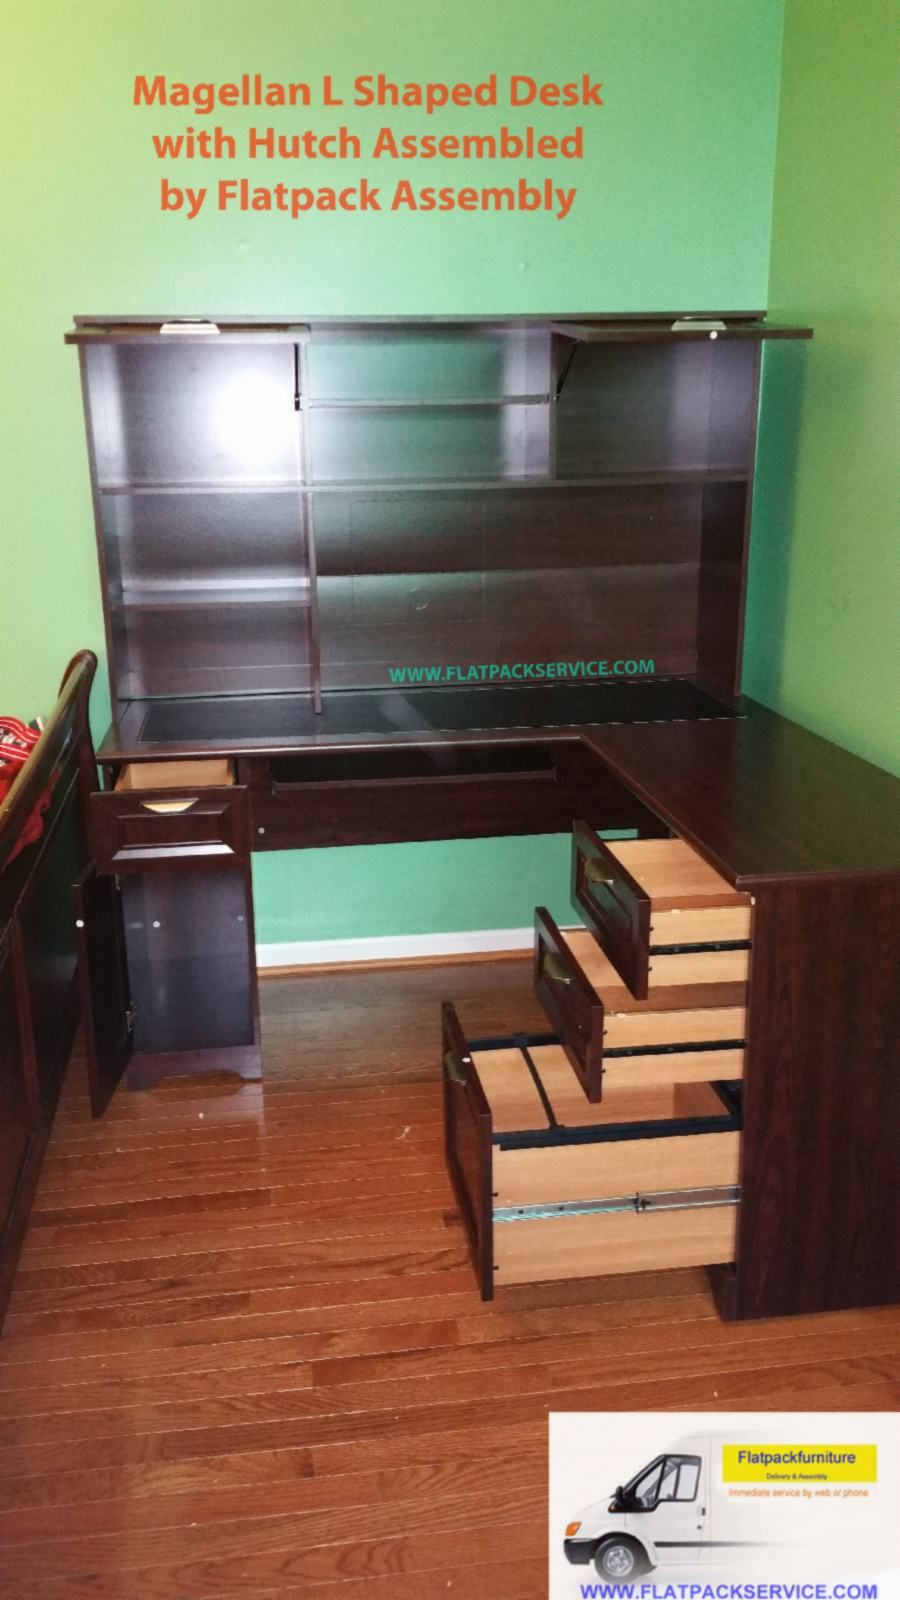 Flatpack Furniture Embly Services 76 Photos